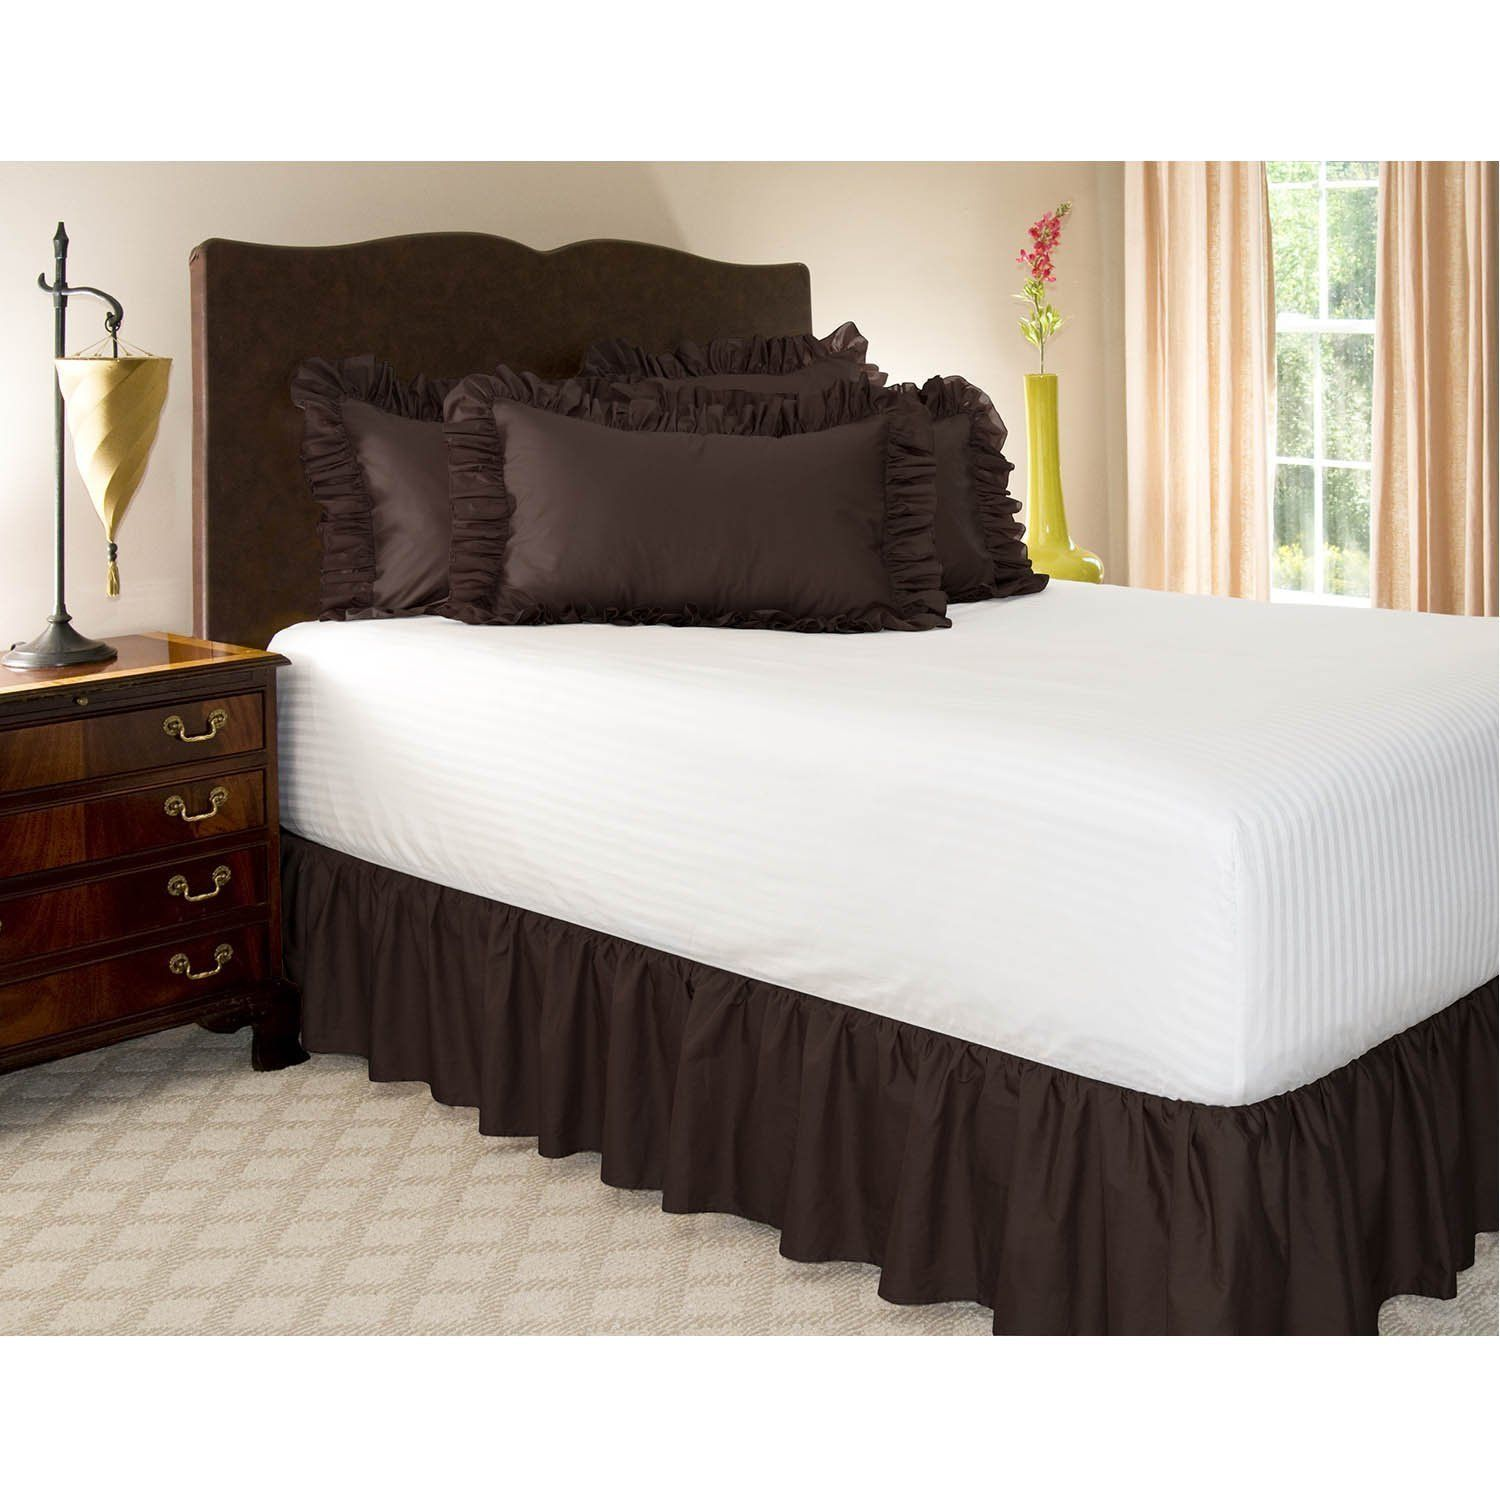 How to Make Bed skirt for Low Profile Box Spring? Bed